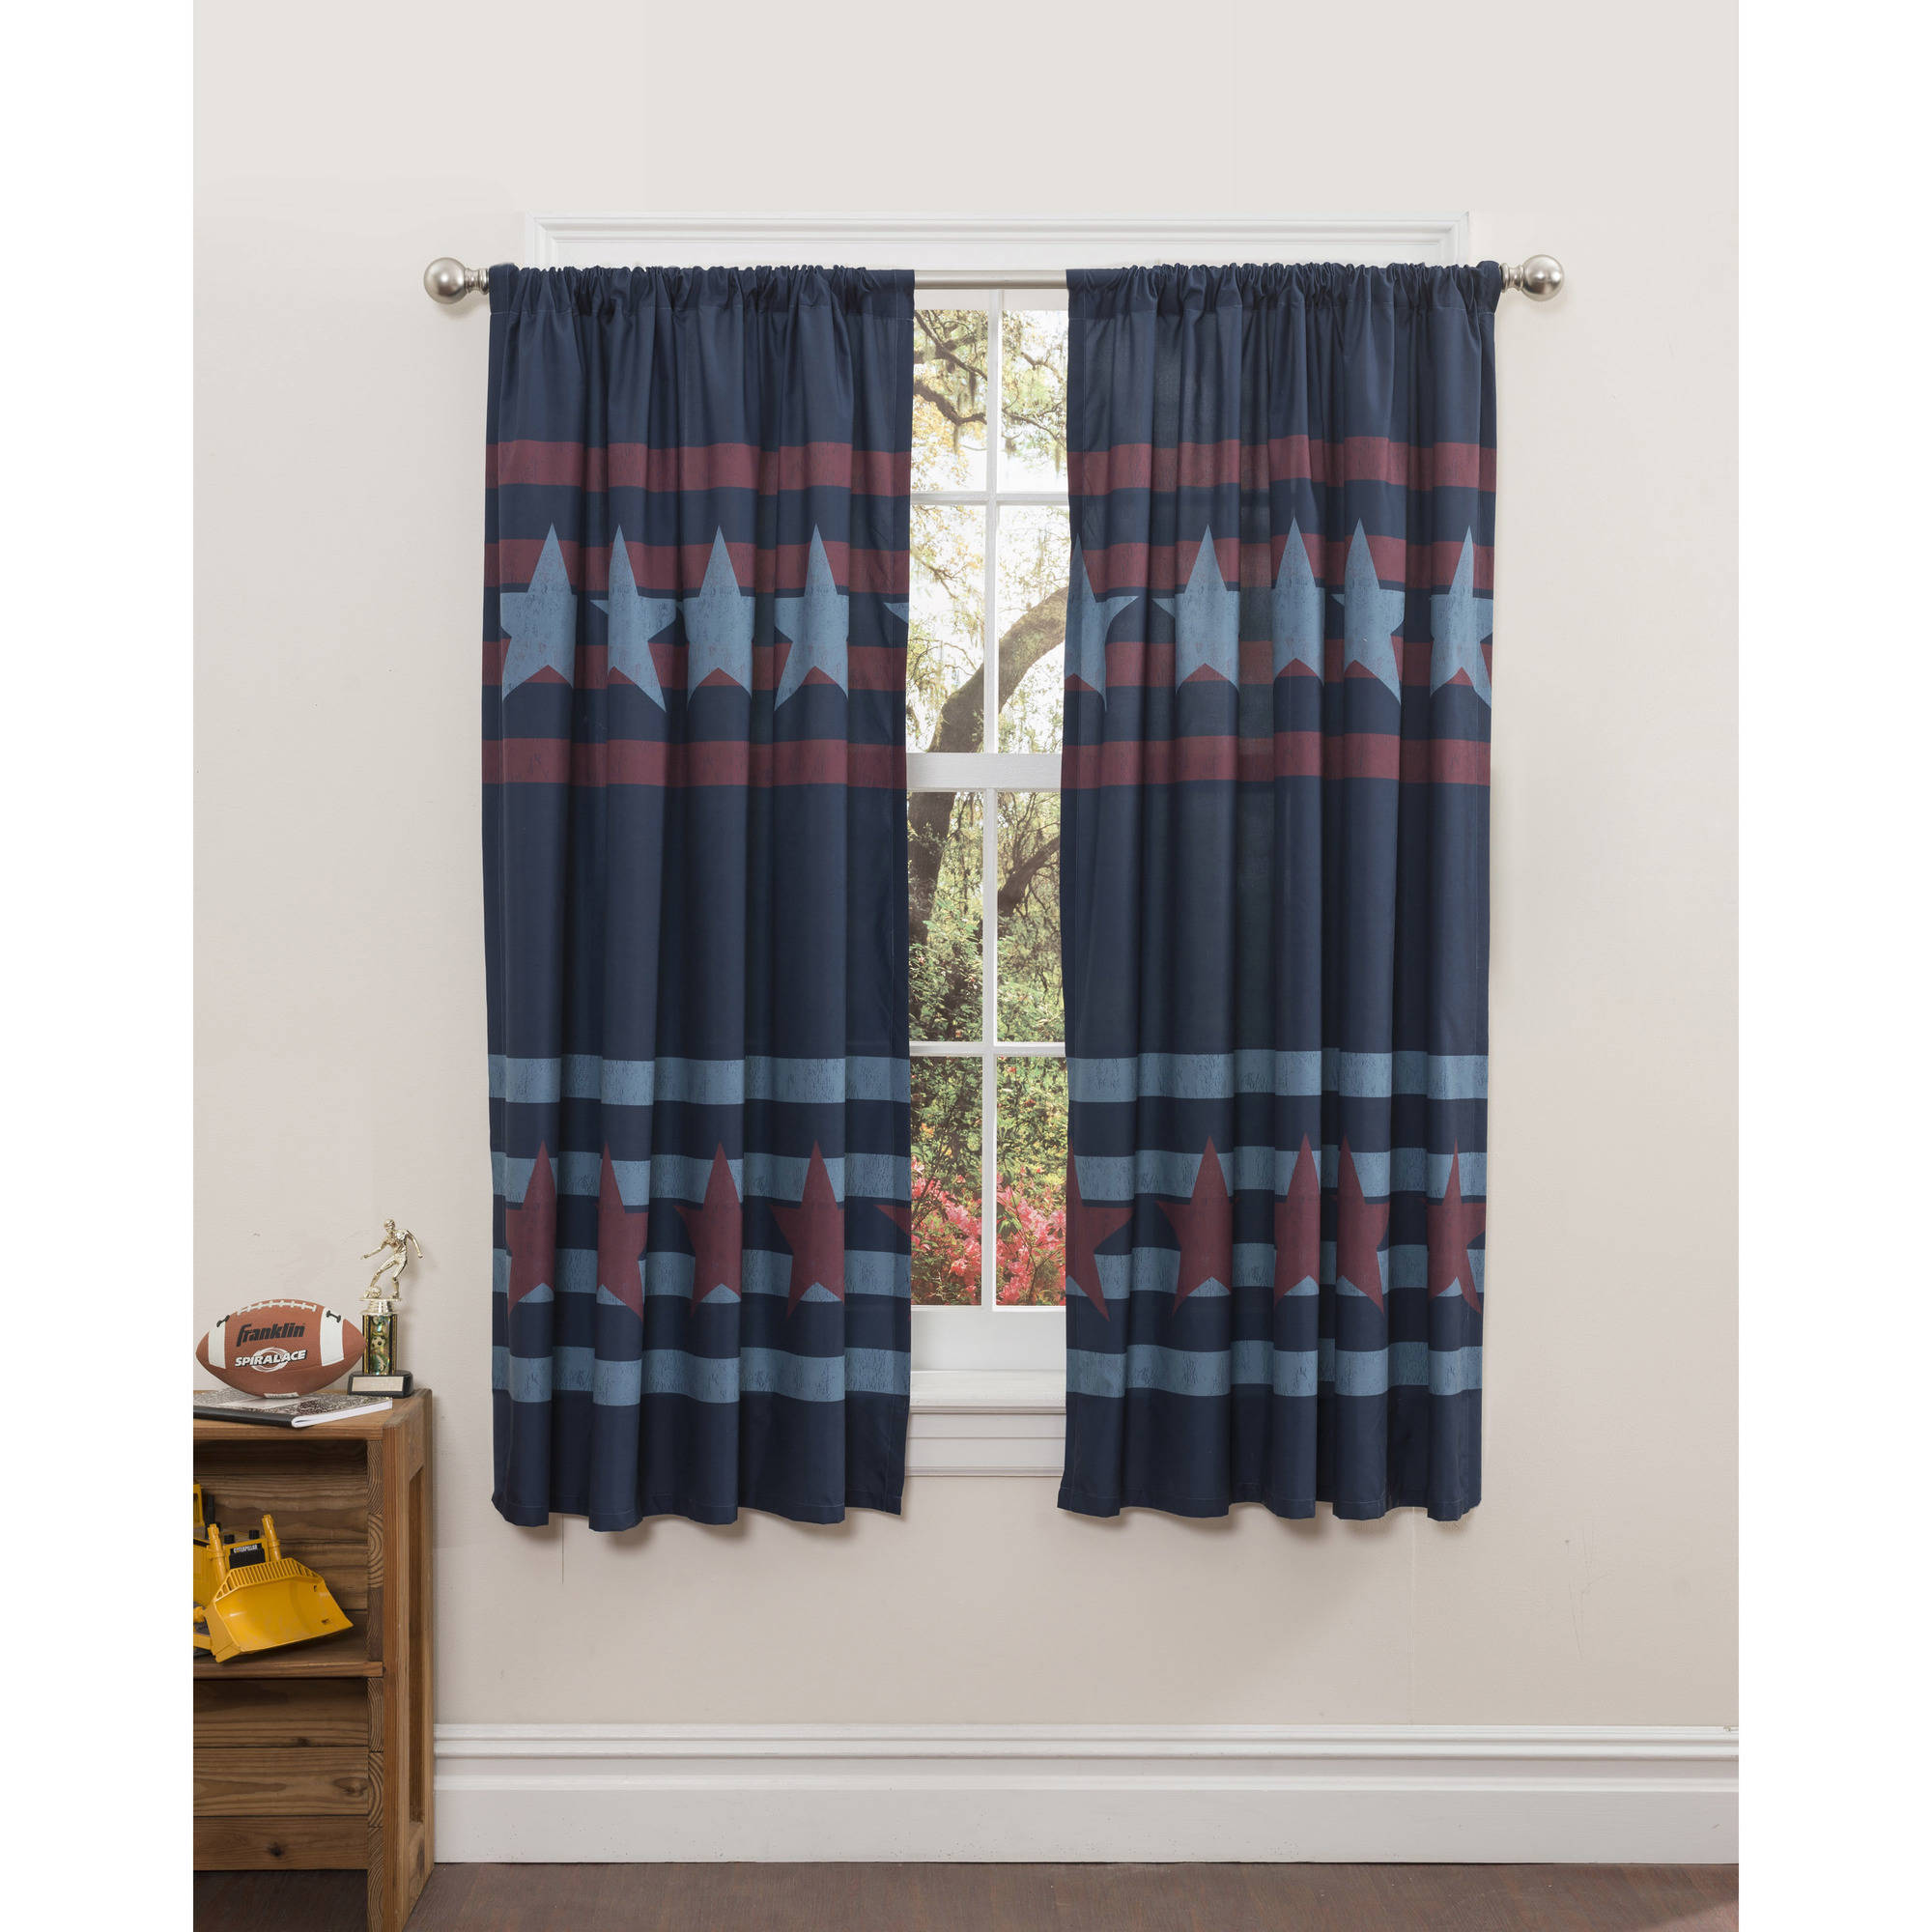 Mainstays Stars-and-Stripes Boys Bedroom Curtains, Set of two by Idea Nuova